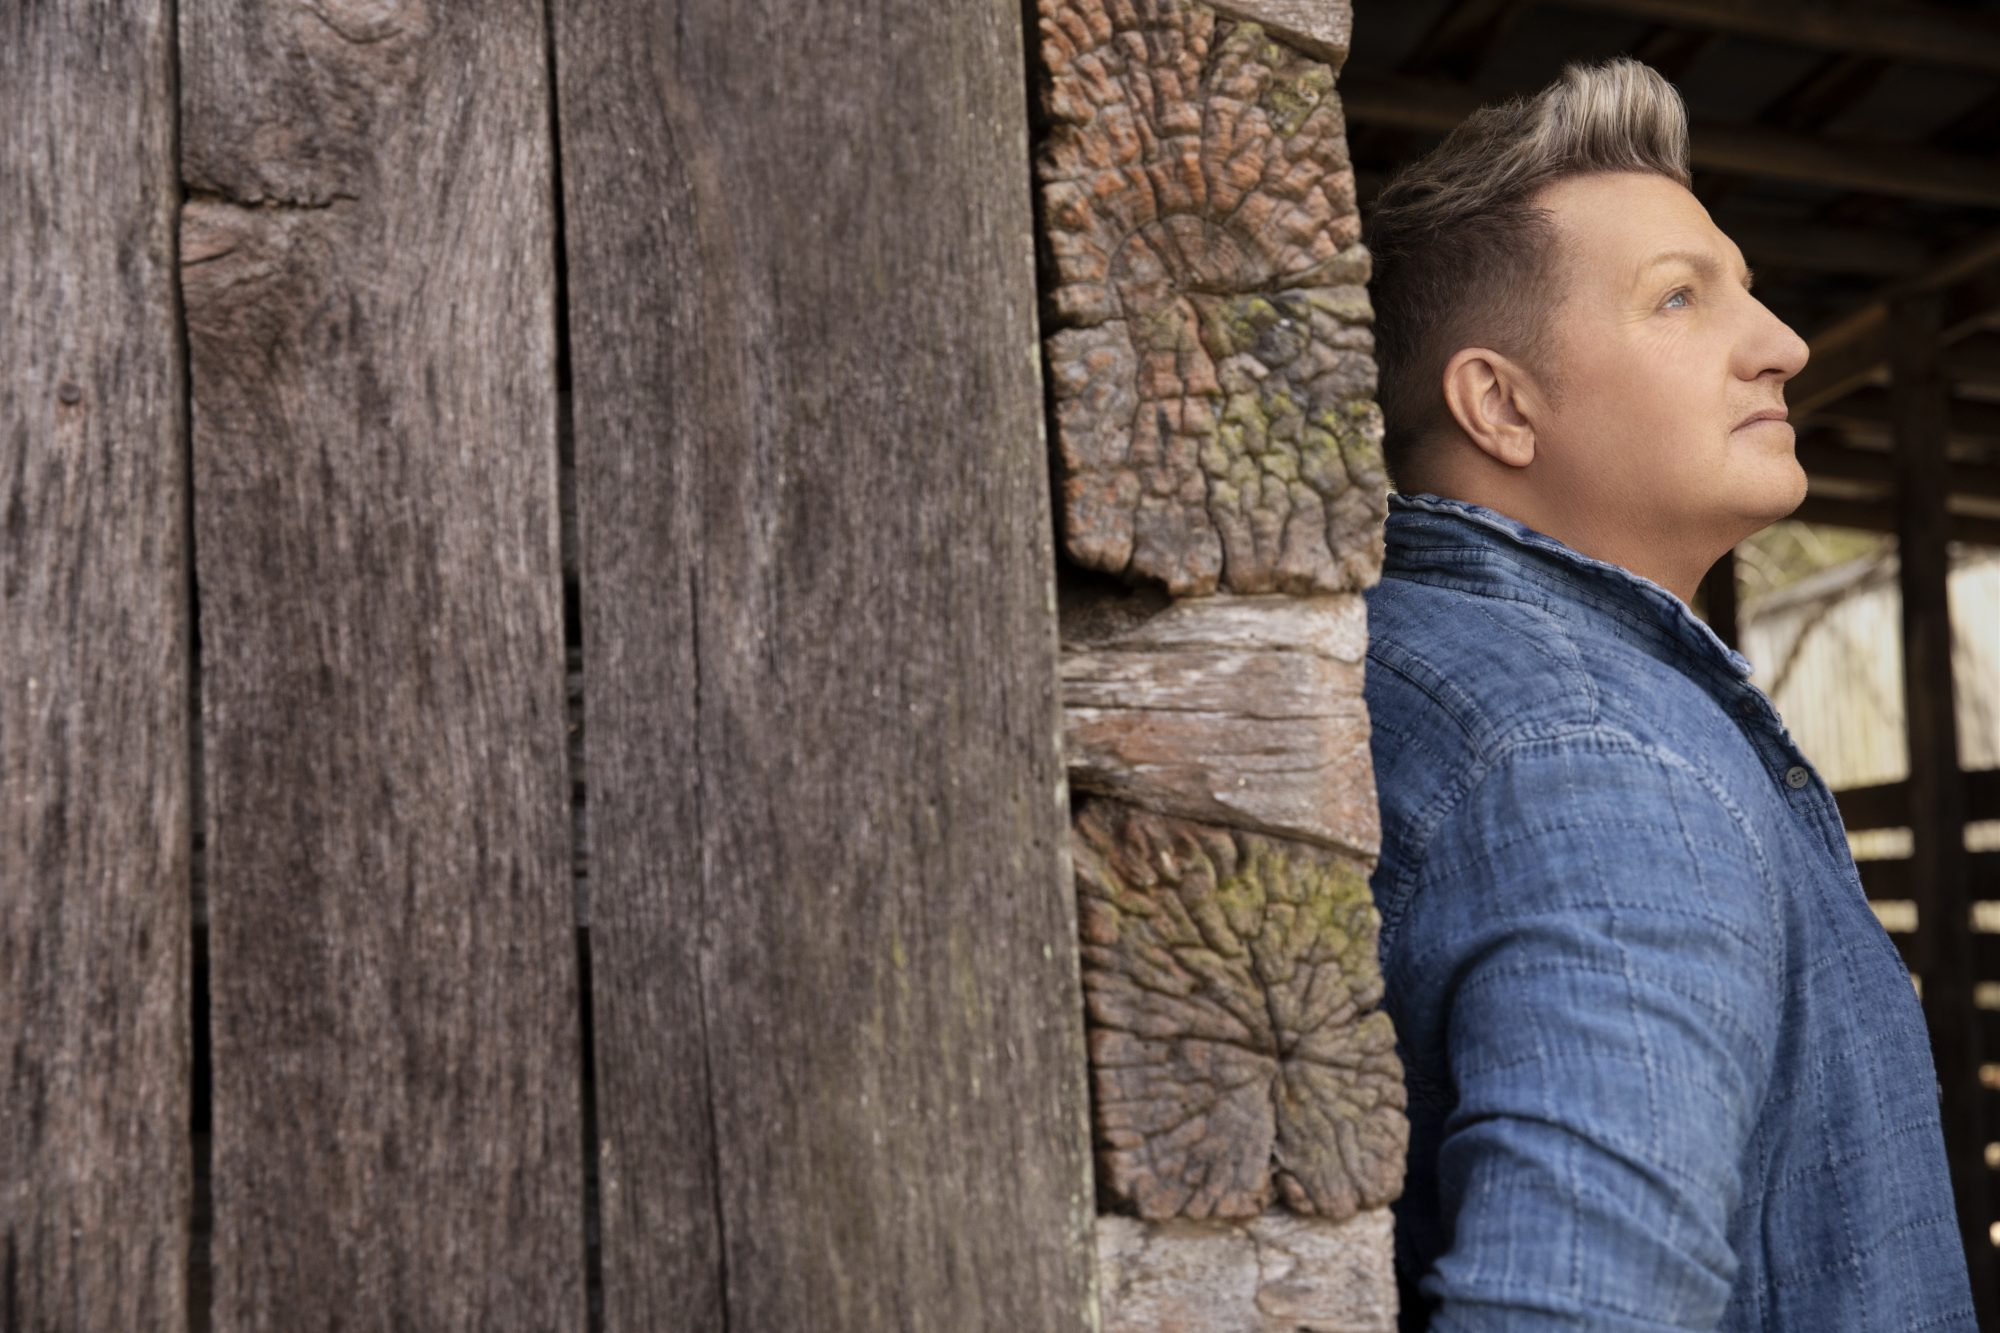 Gary LeVox Reflects on Next Chapter of His Career: 'Whatever Door Opens, I'm Going to Run Through It'